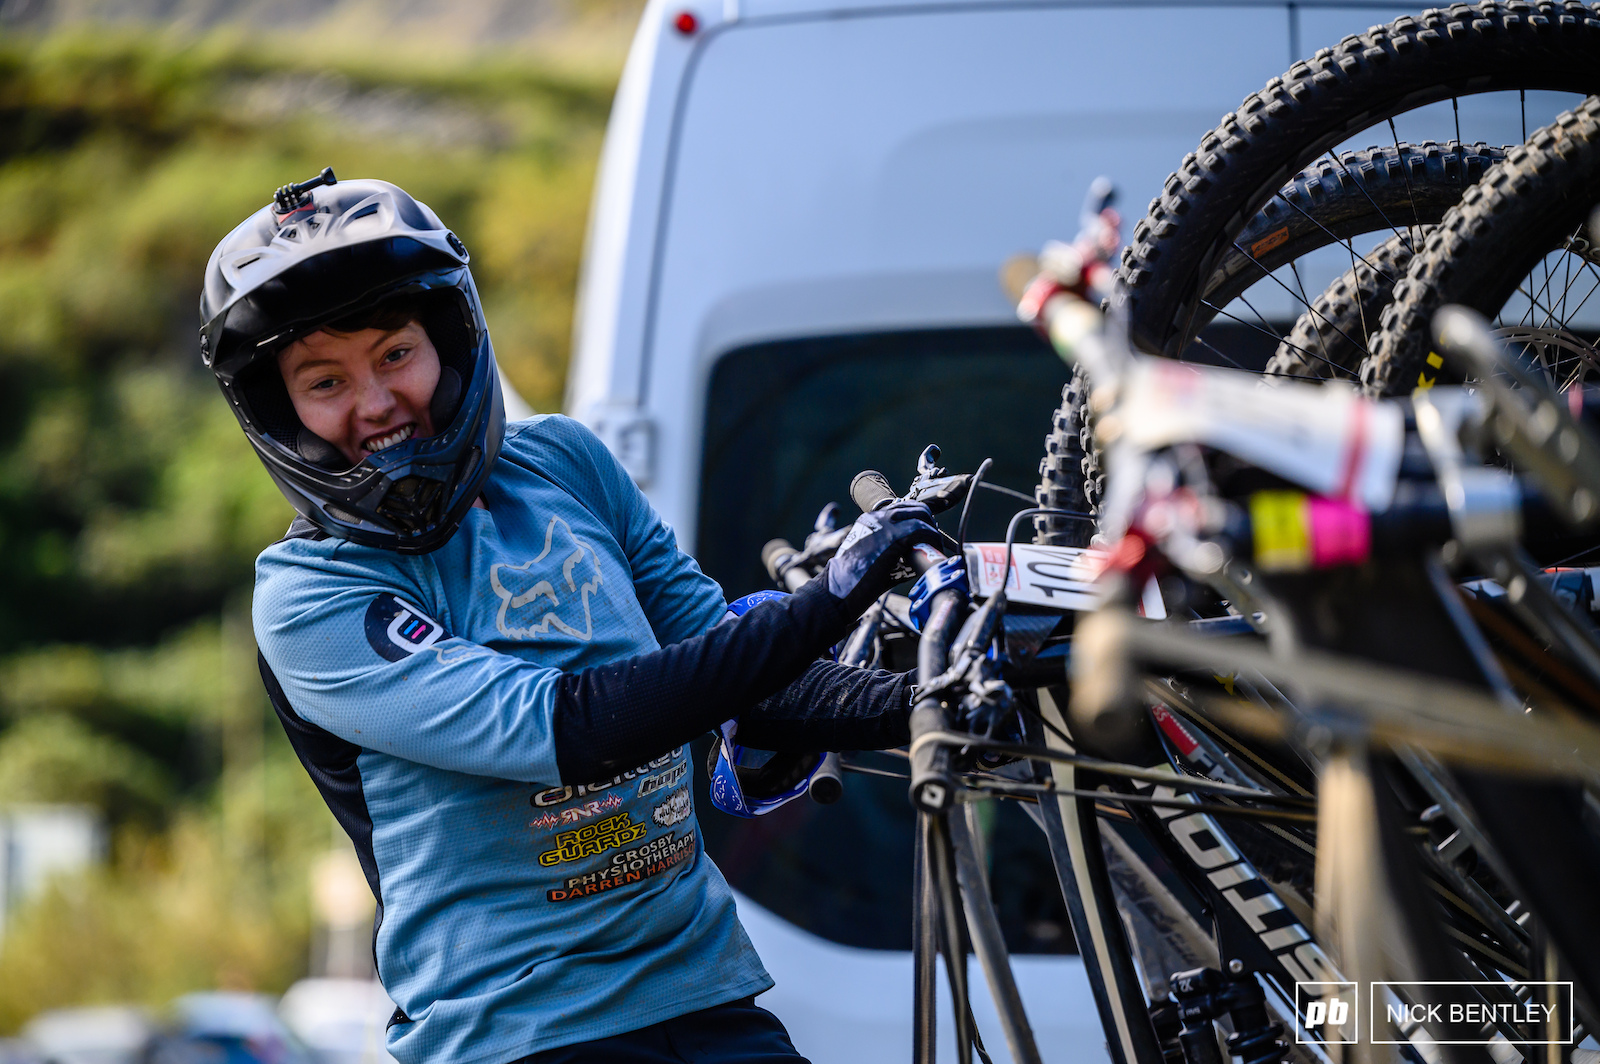 It s not easy to put your bike on the uplift trailer when you re as small as Stacey Fisher